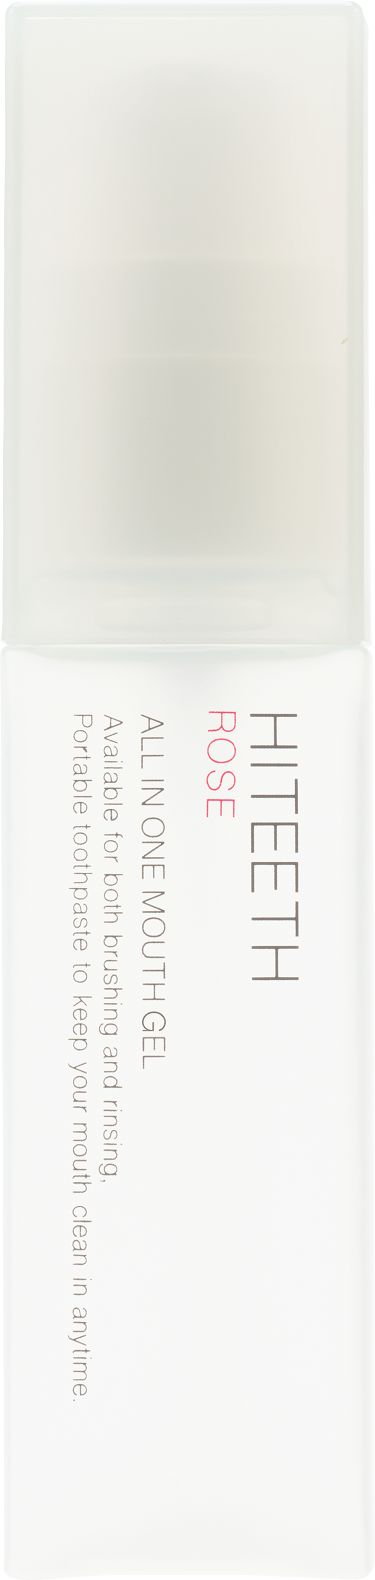 HITEETH ALL IN ONE MOUTH GEL ROSE